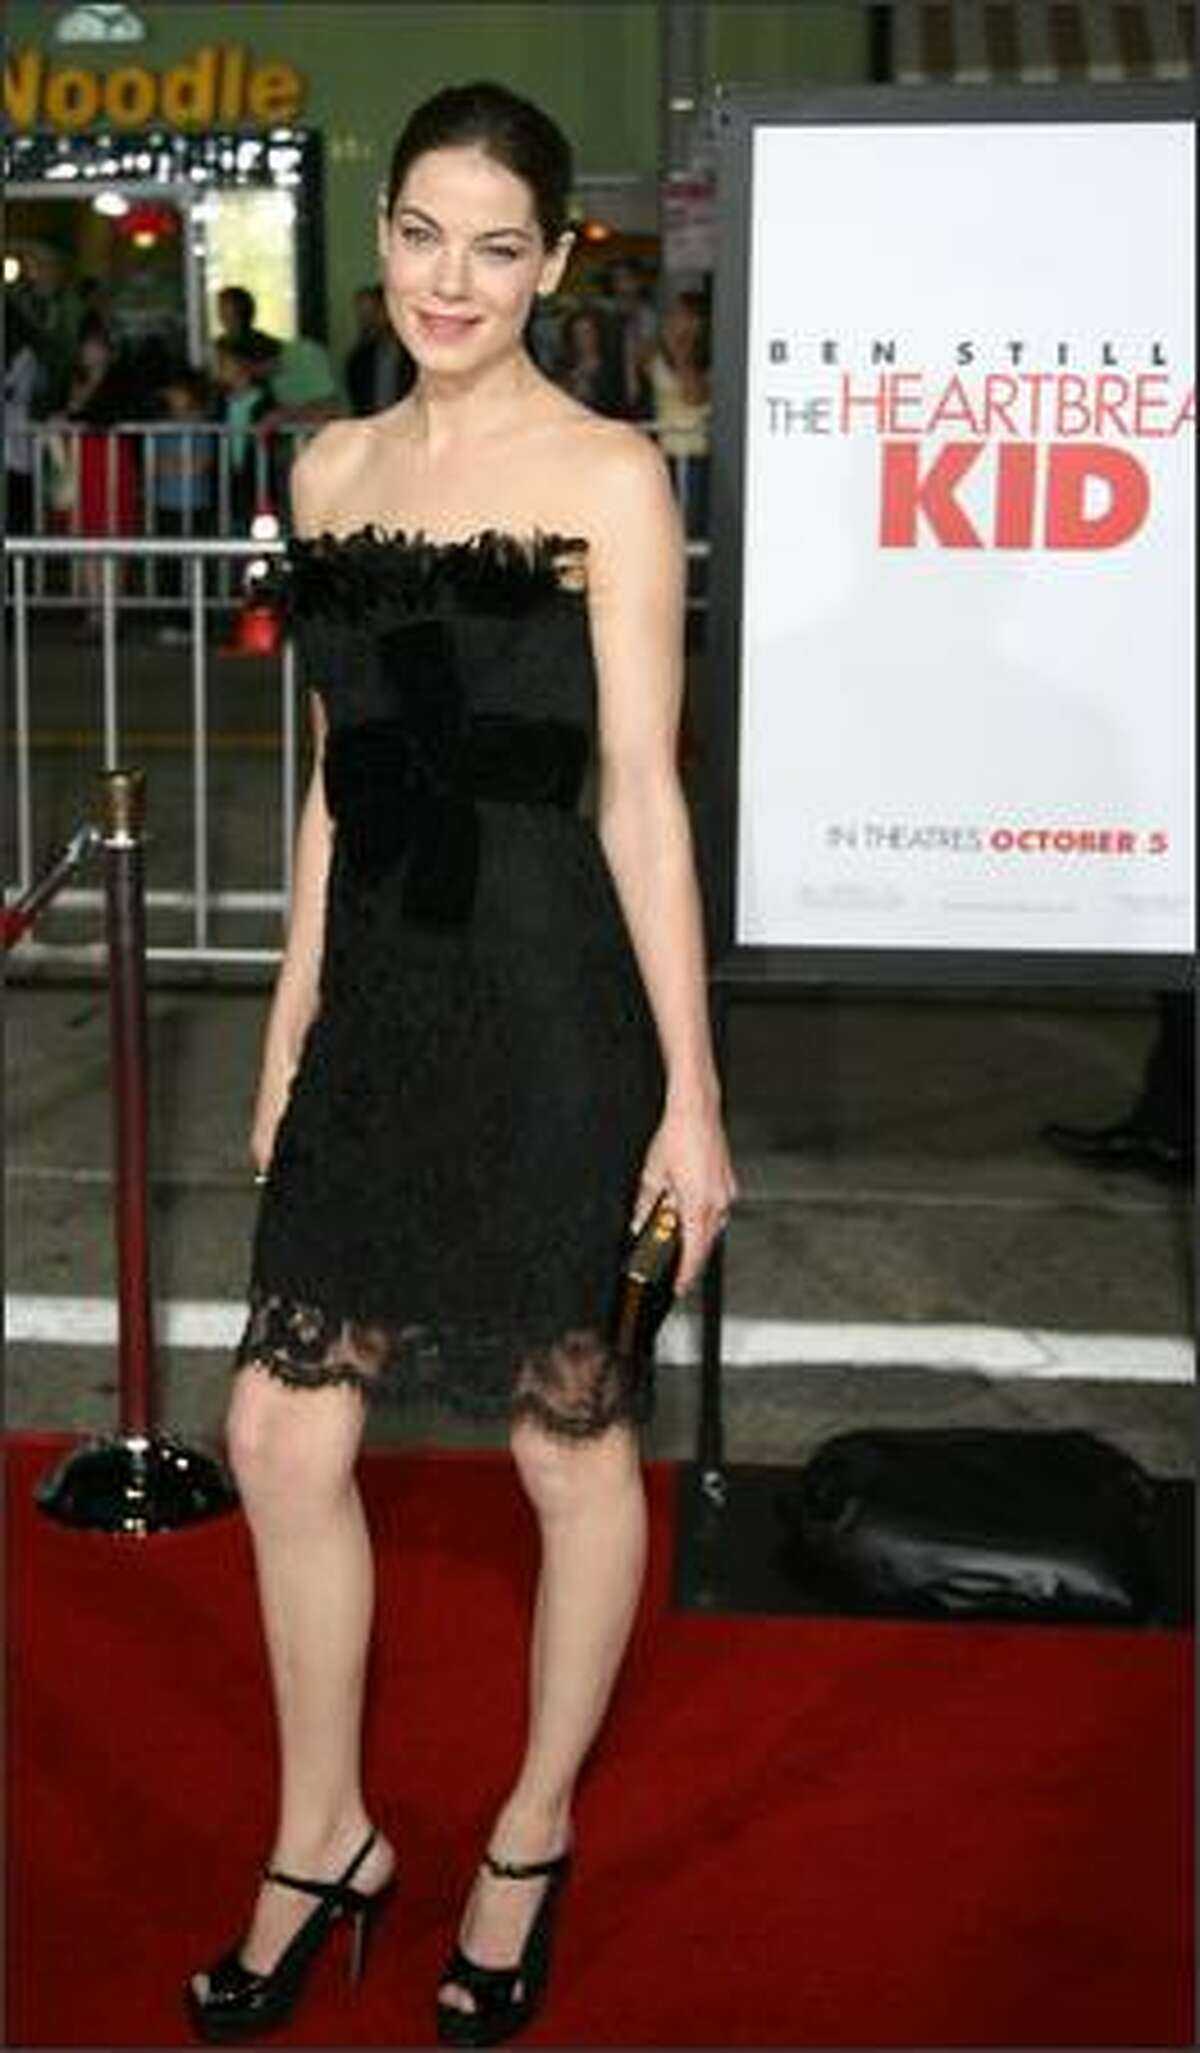 Actress Michelle Monaghan arrives for the premiere of